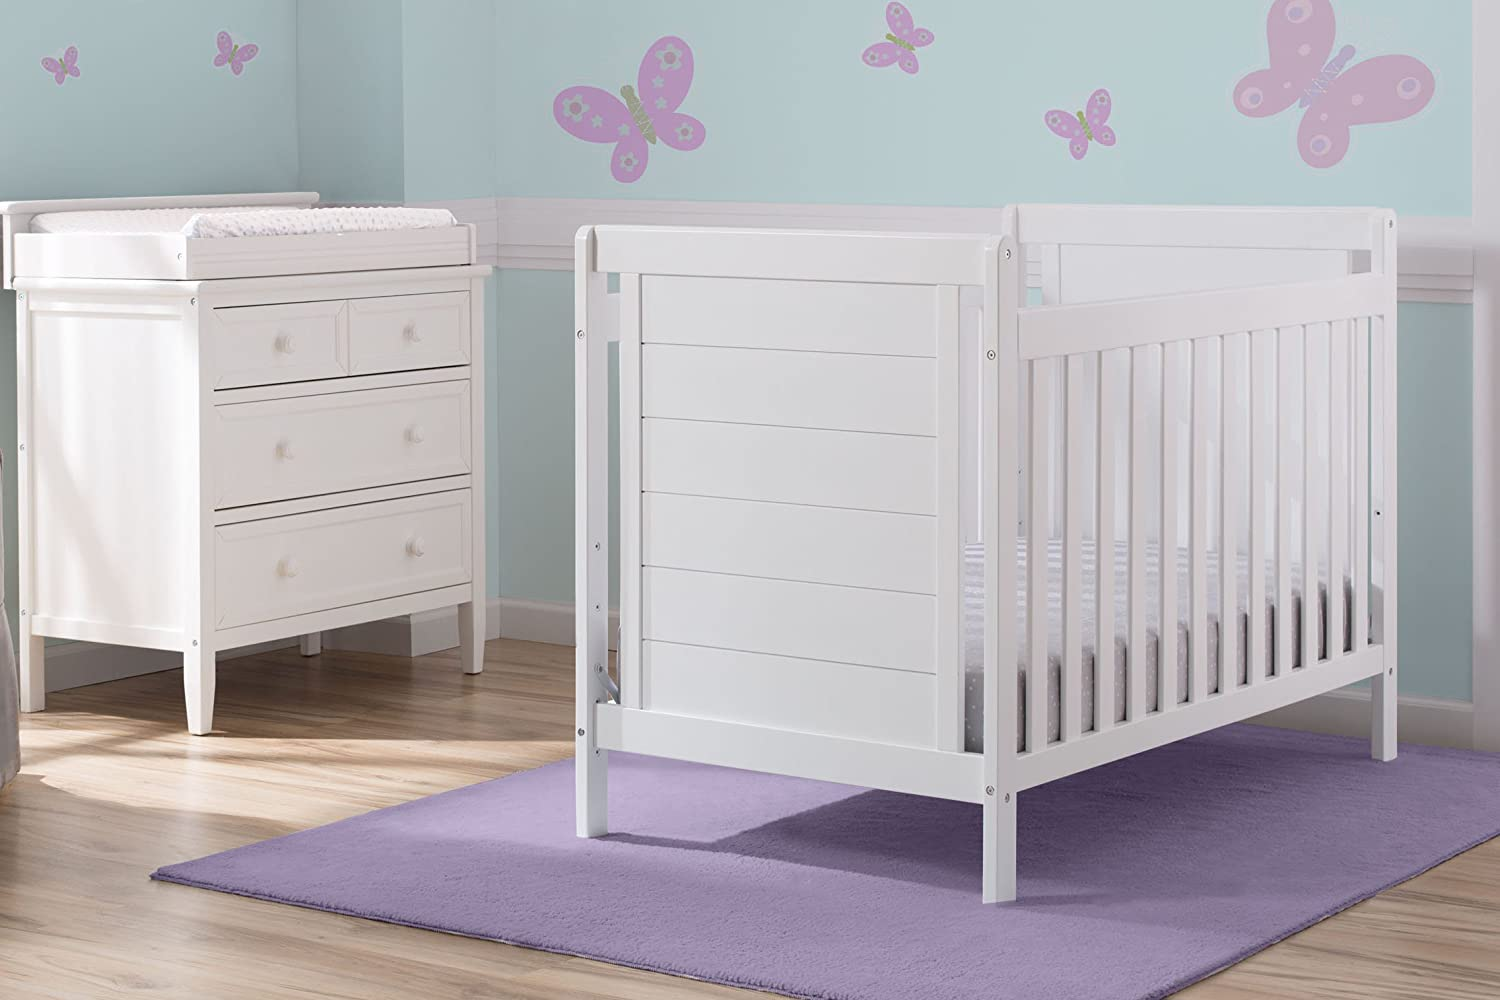 Delta Children Sunnyvale 4-in-1 Convertible Baby Crib, Bianca White